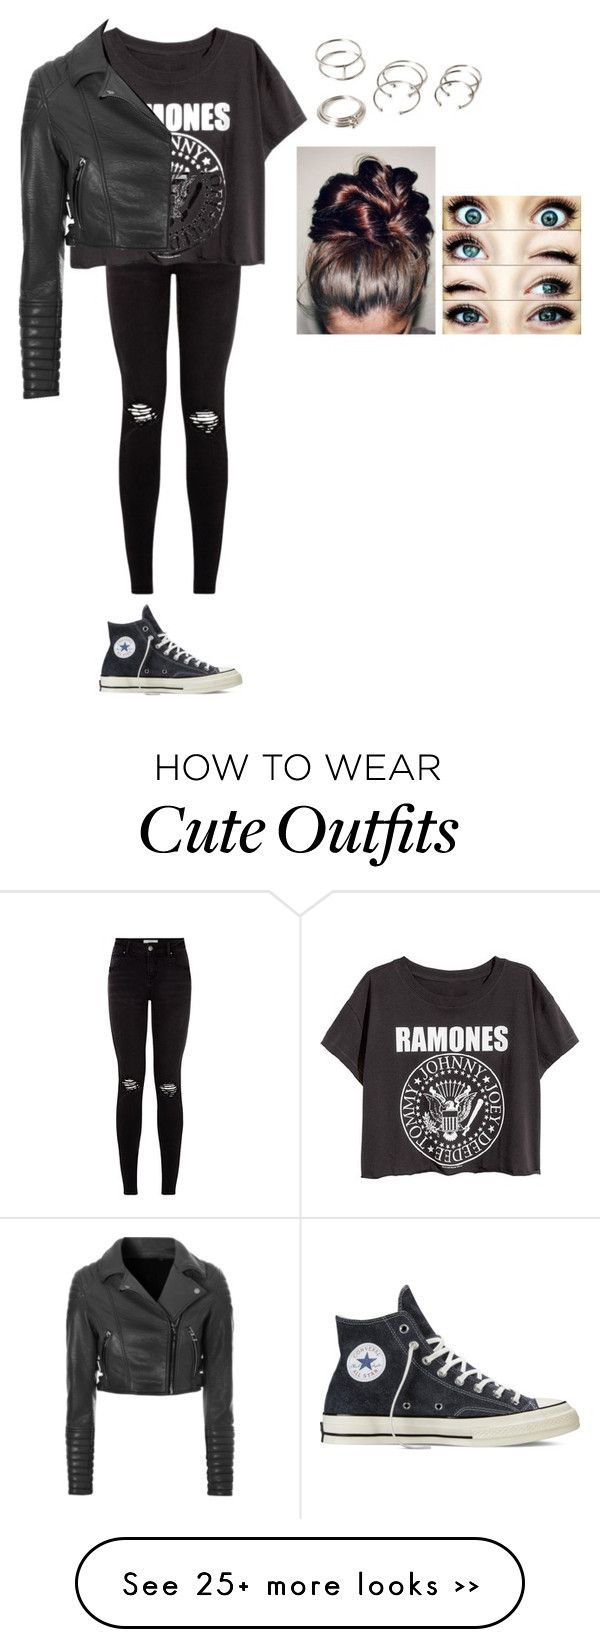 Cute Outfits Sets | 5sos inspired outfits, Cute outfits